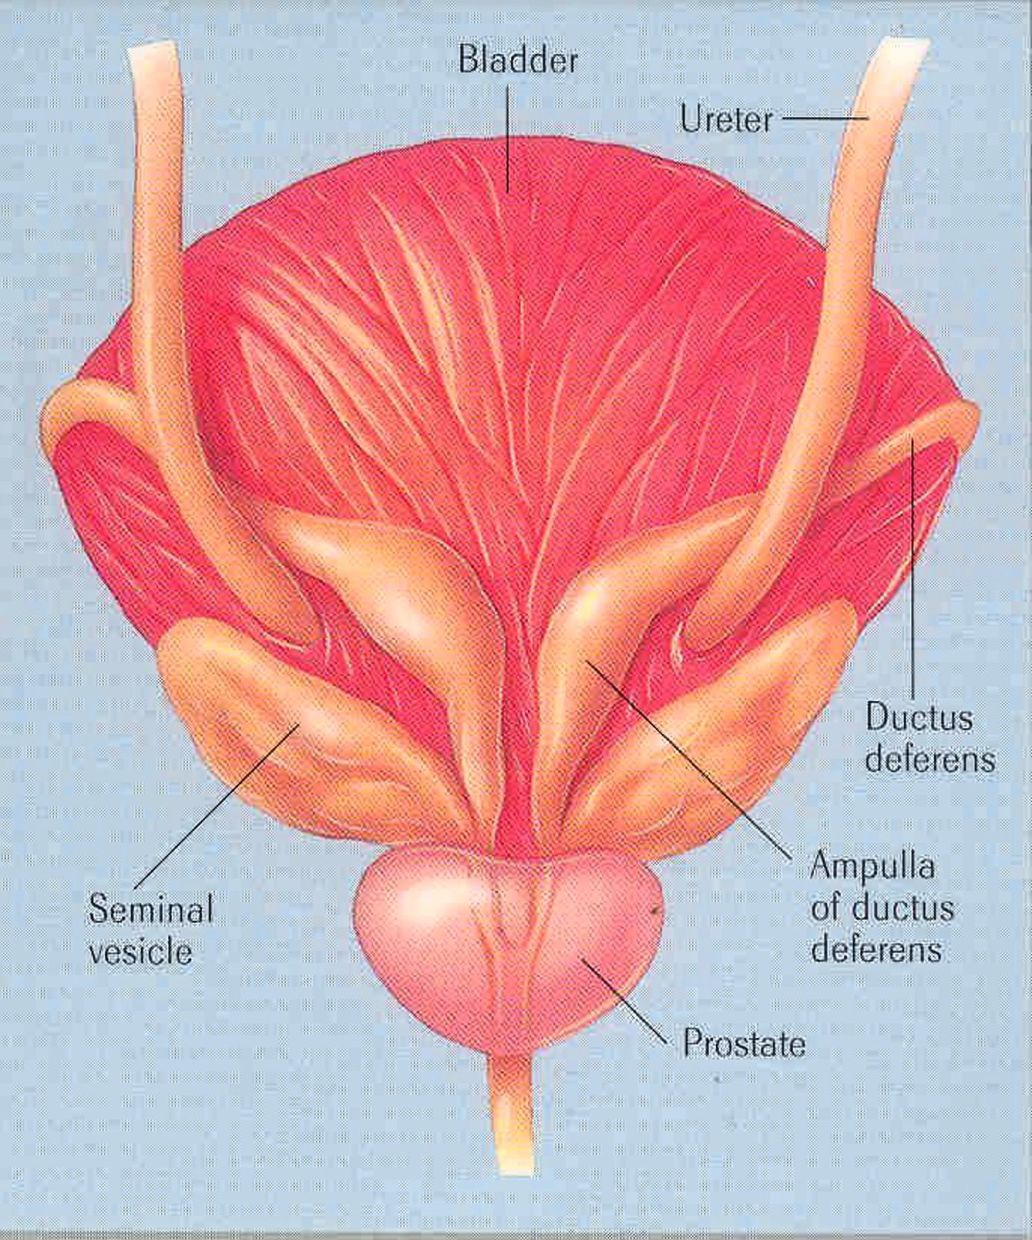 The problem with diagnosing and treating prostatitis